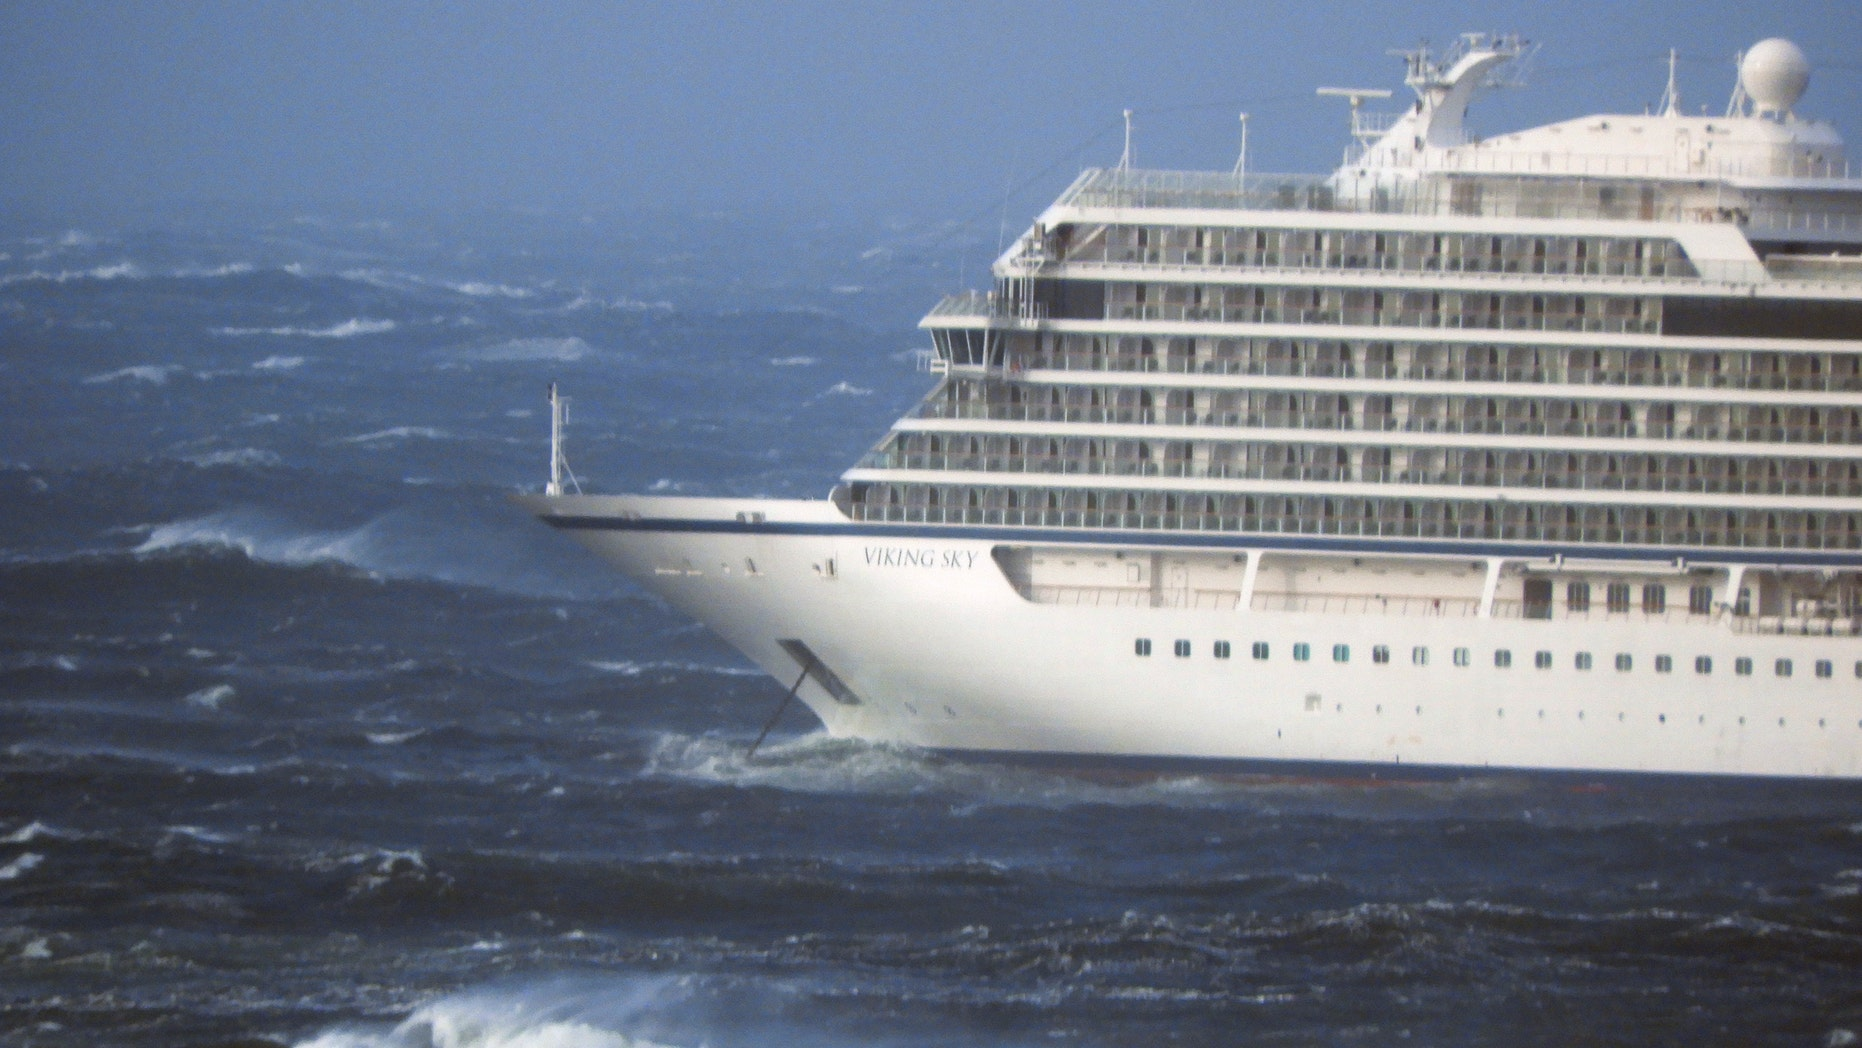 The cruise ship Viking Sky, at anchor in heavy seas, after it sent out a mayday signal because of engine failure in windy conditions, near Hustadvika, off the west coast of Norway.